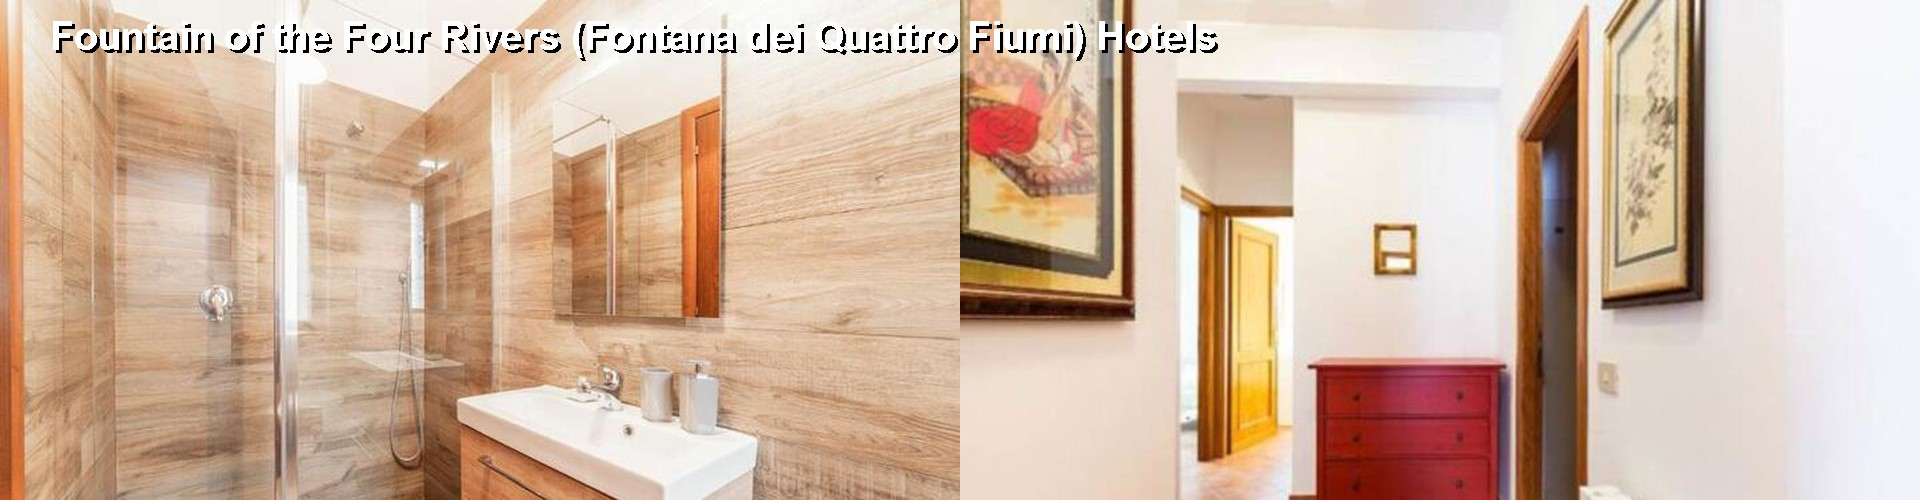 5 Best Hotels near Fountain of the Four Rivers (Fontana dei Quattro Fiumi)